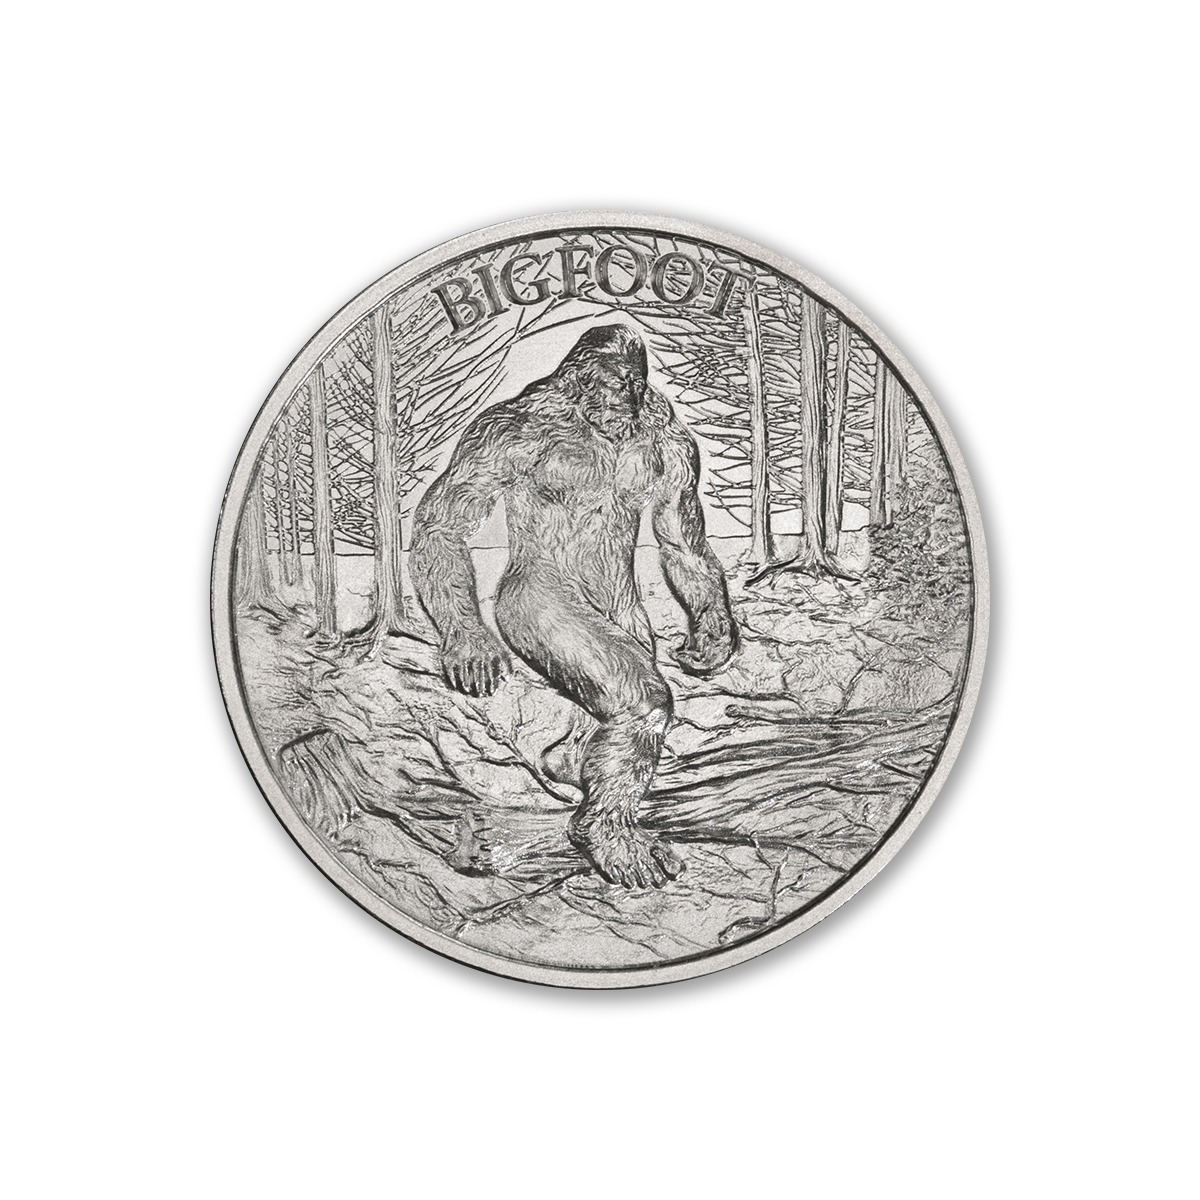 BIGFOOT – 1 TROY OUNCE – 39MM